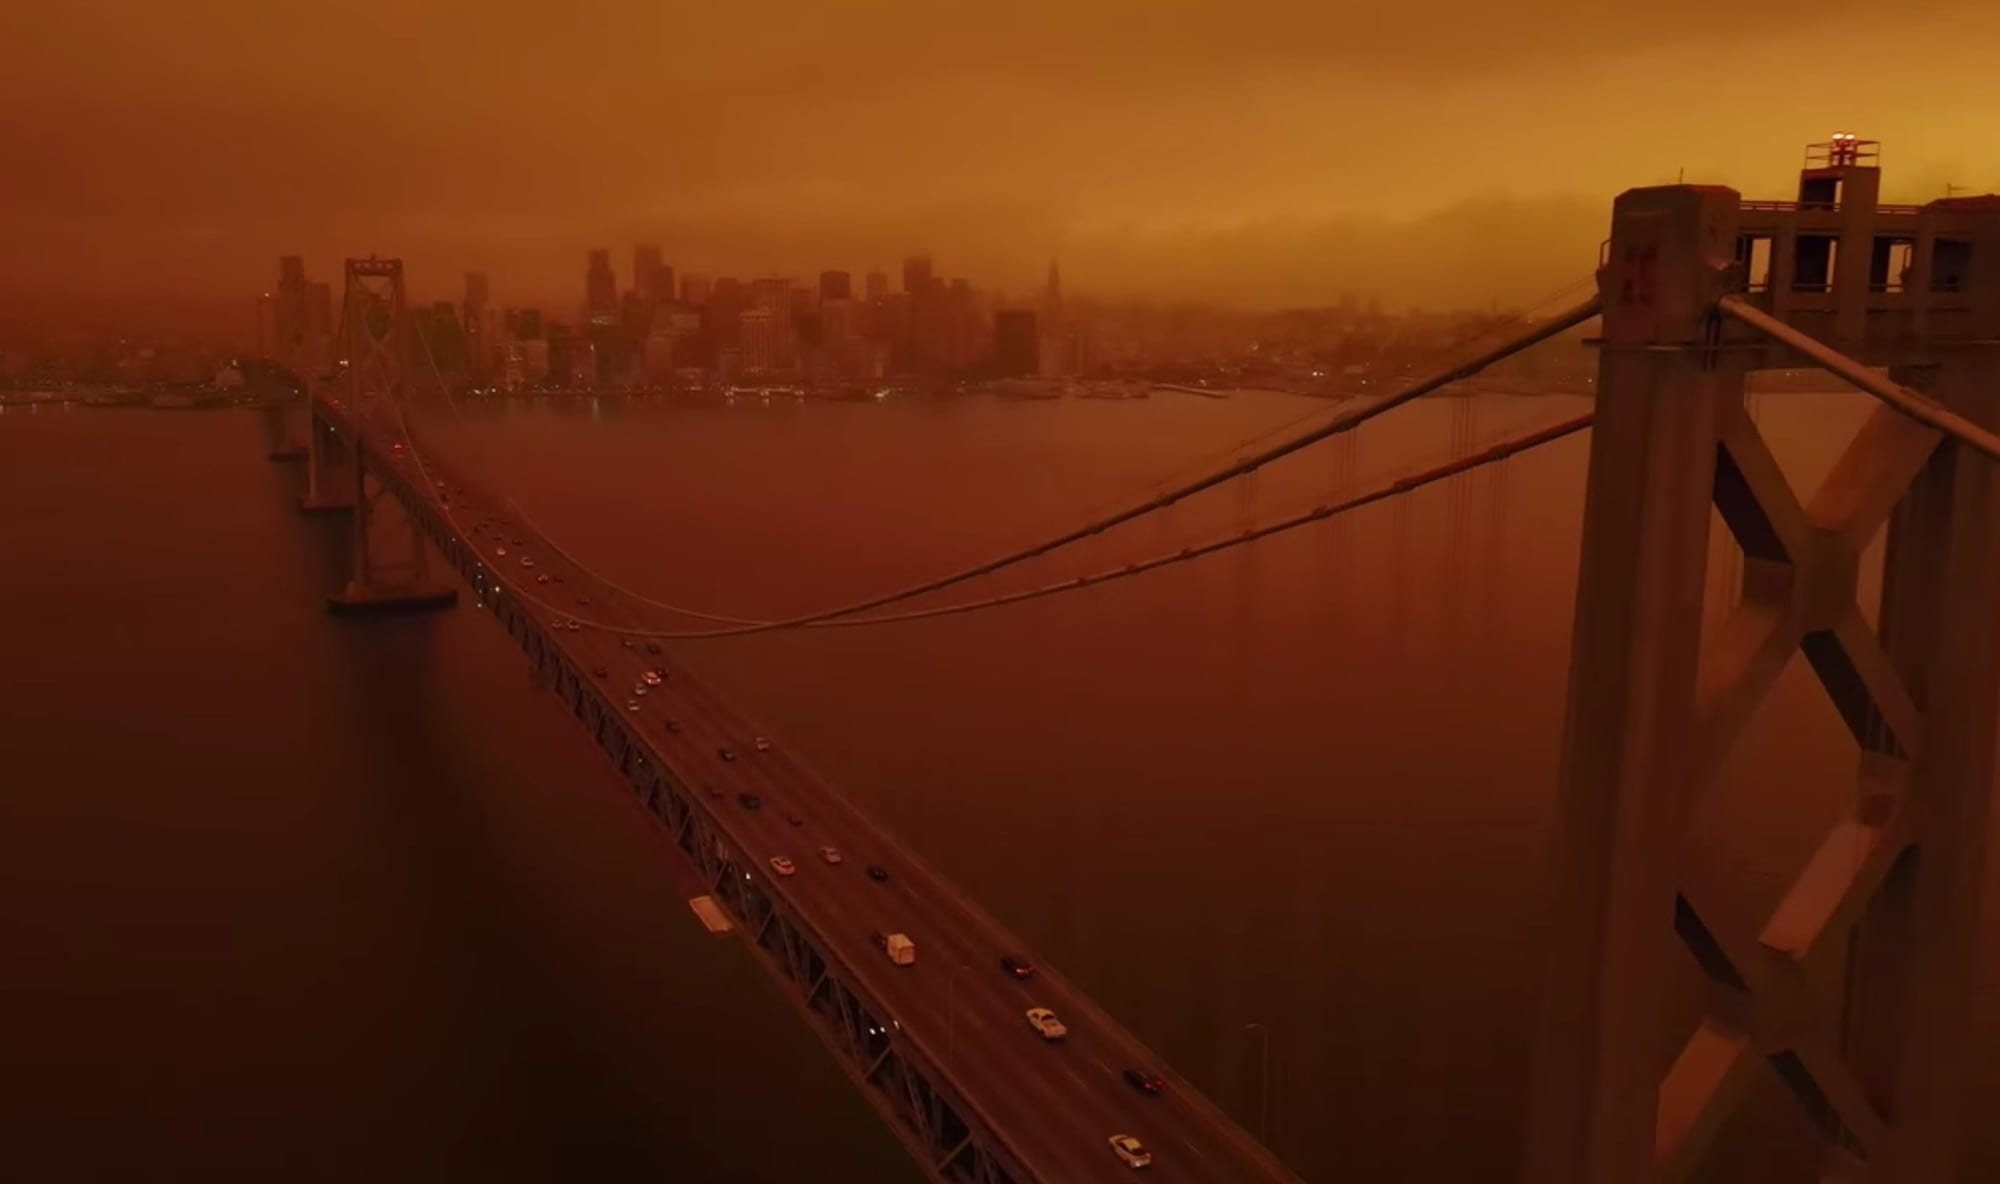 Drone footage shows orange skies over San Francisco and Bay Area